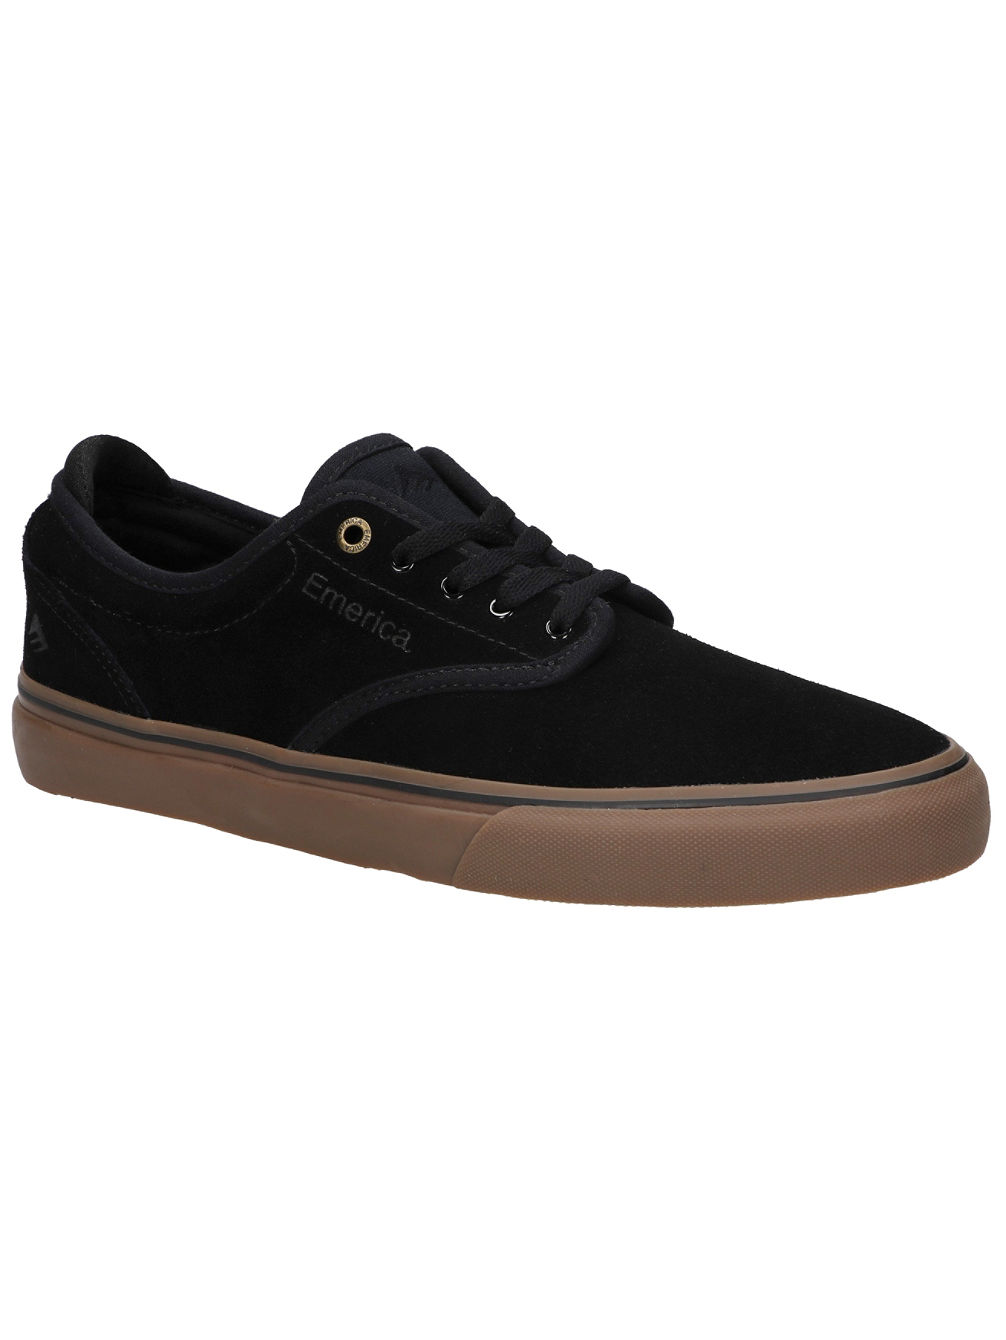 Wino G6 Skate Shoes